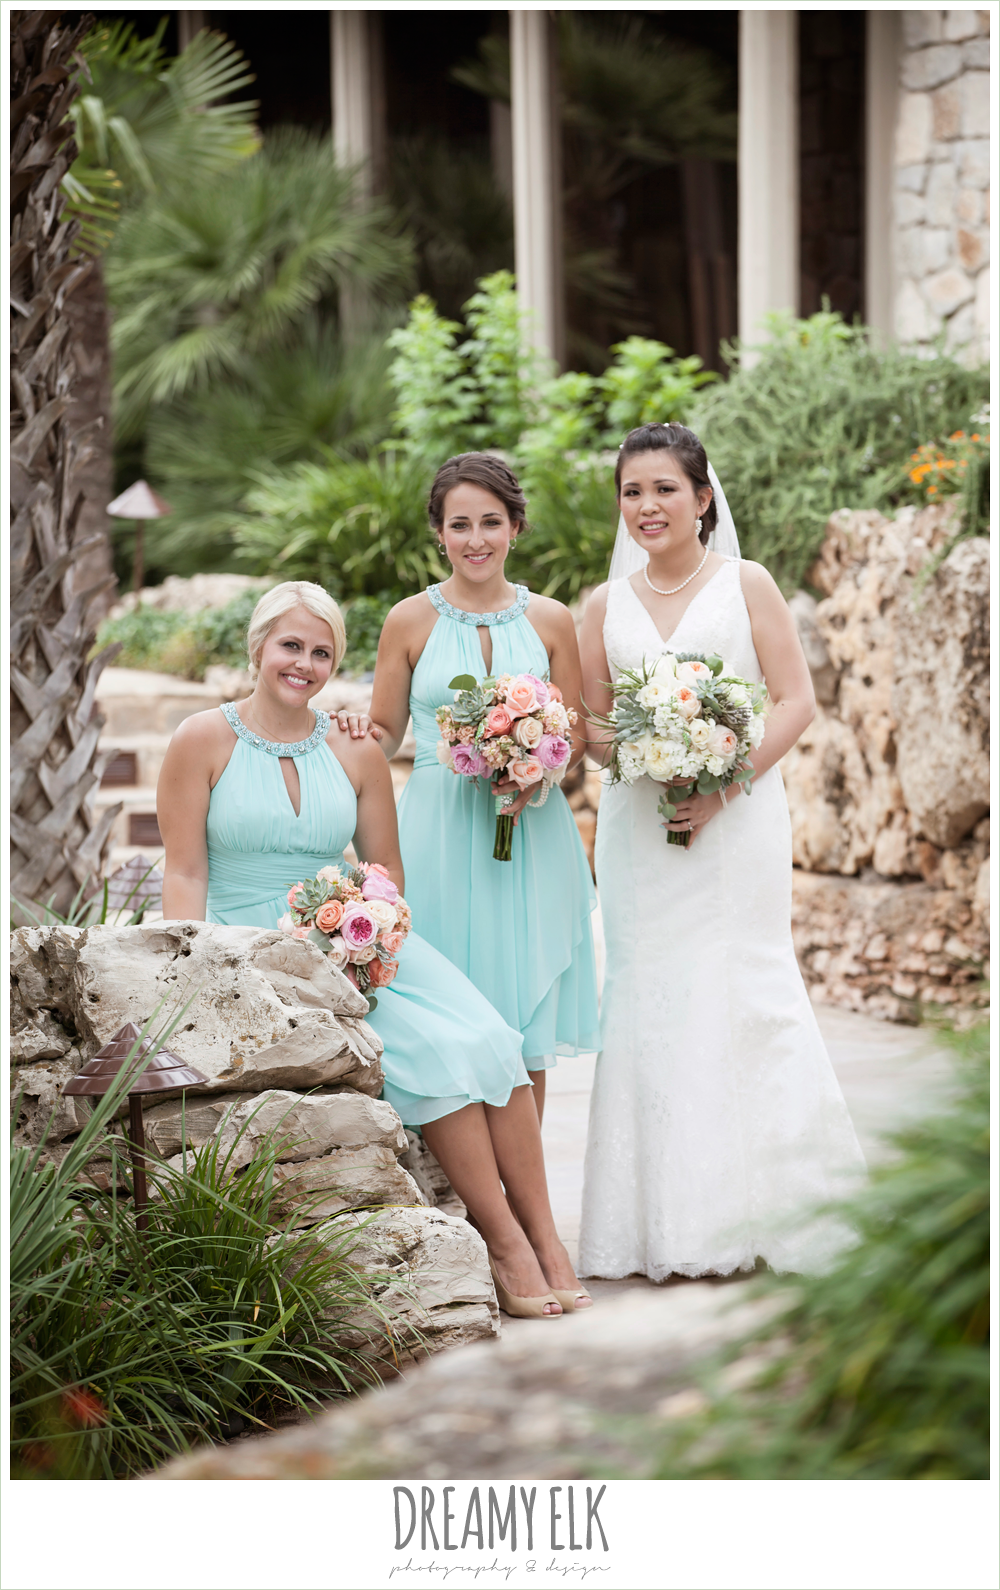 Sandustin nautical wedding horseshoe bay resort texas bride and bridesmaids lace two shouldered wedding dress aqua bridesmaid dress nautical theme ombrellifo Images